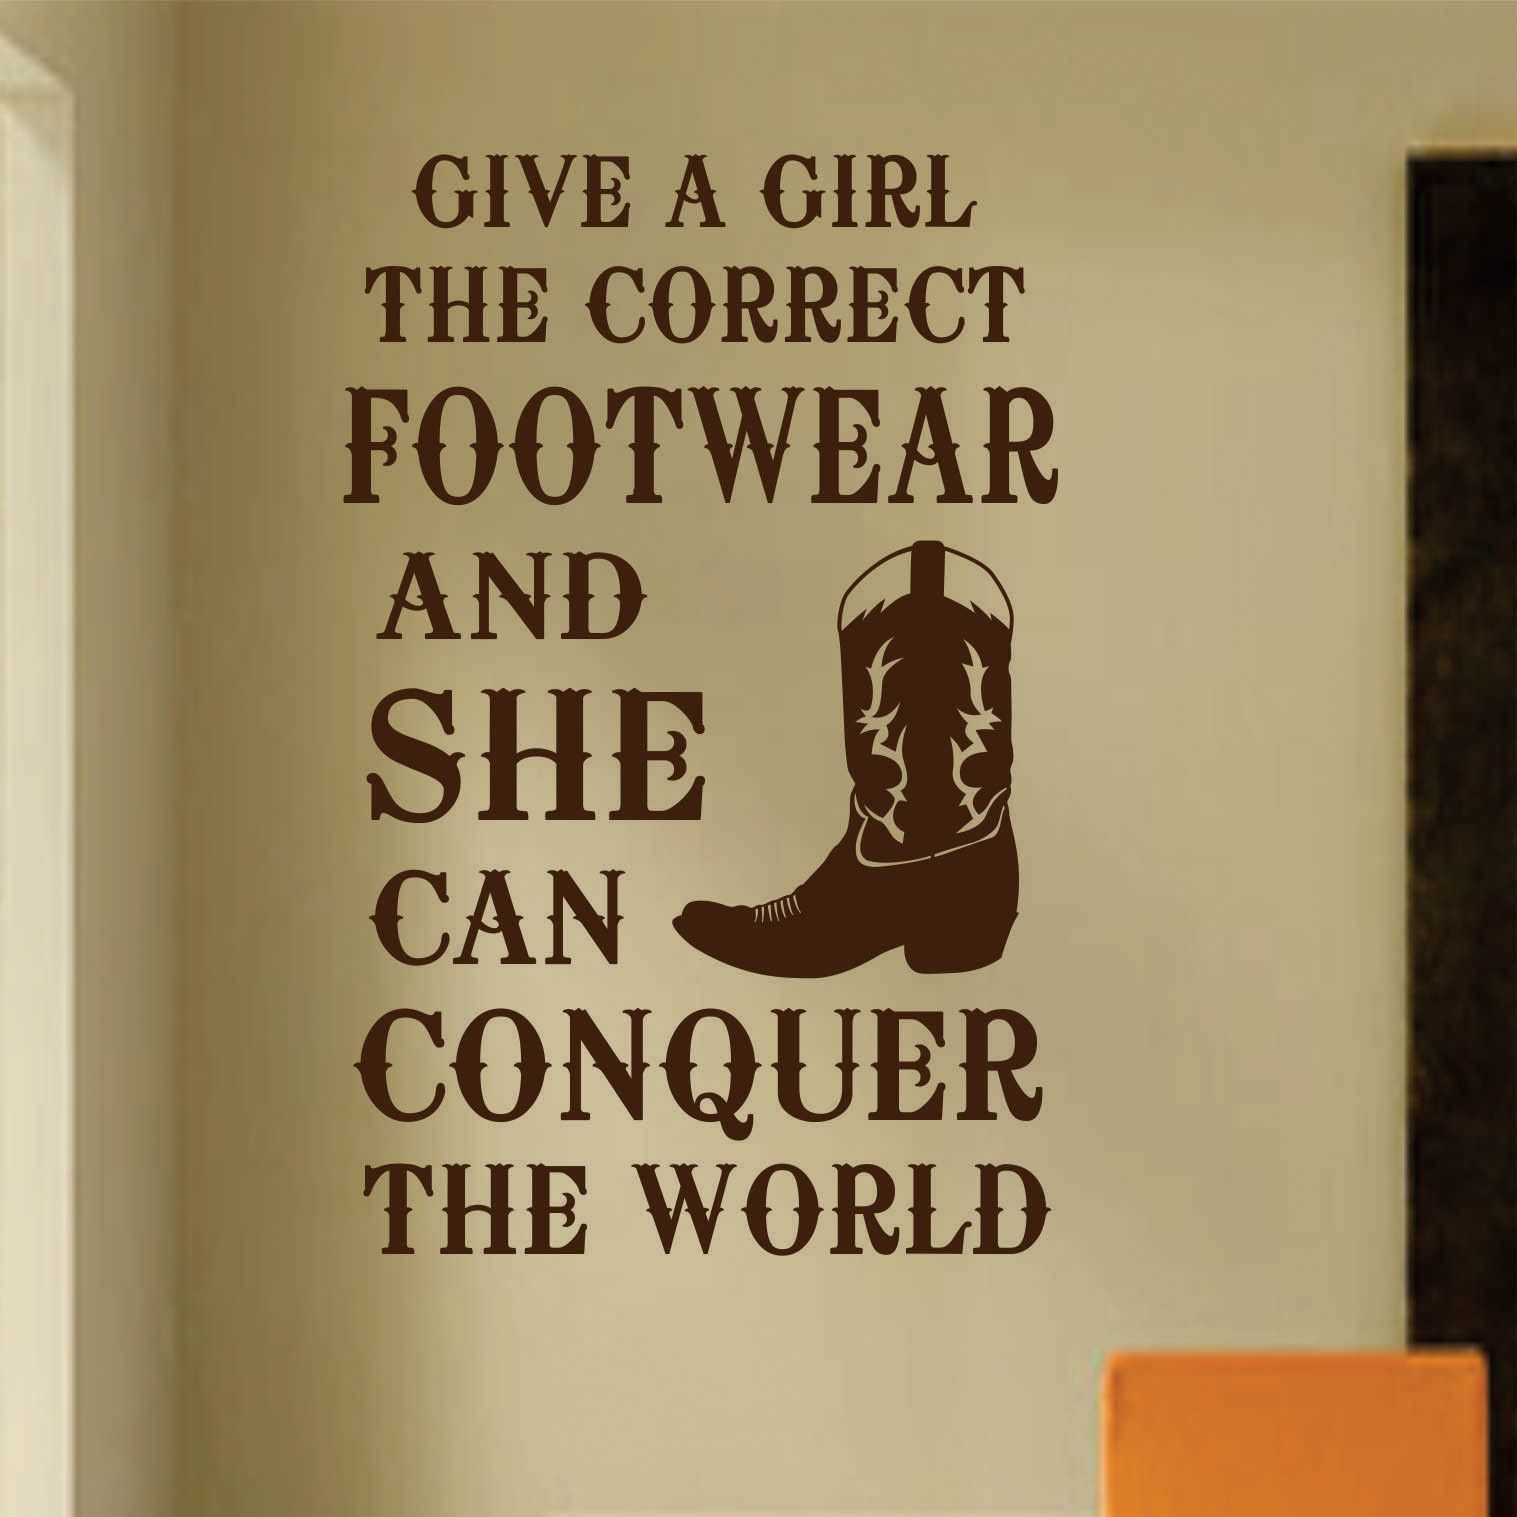 Big Girl Boots Quotes: Give Girl Correct Footwear